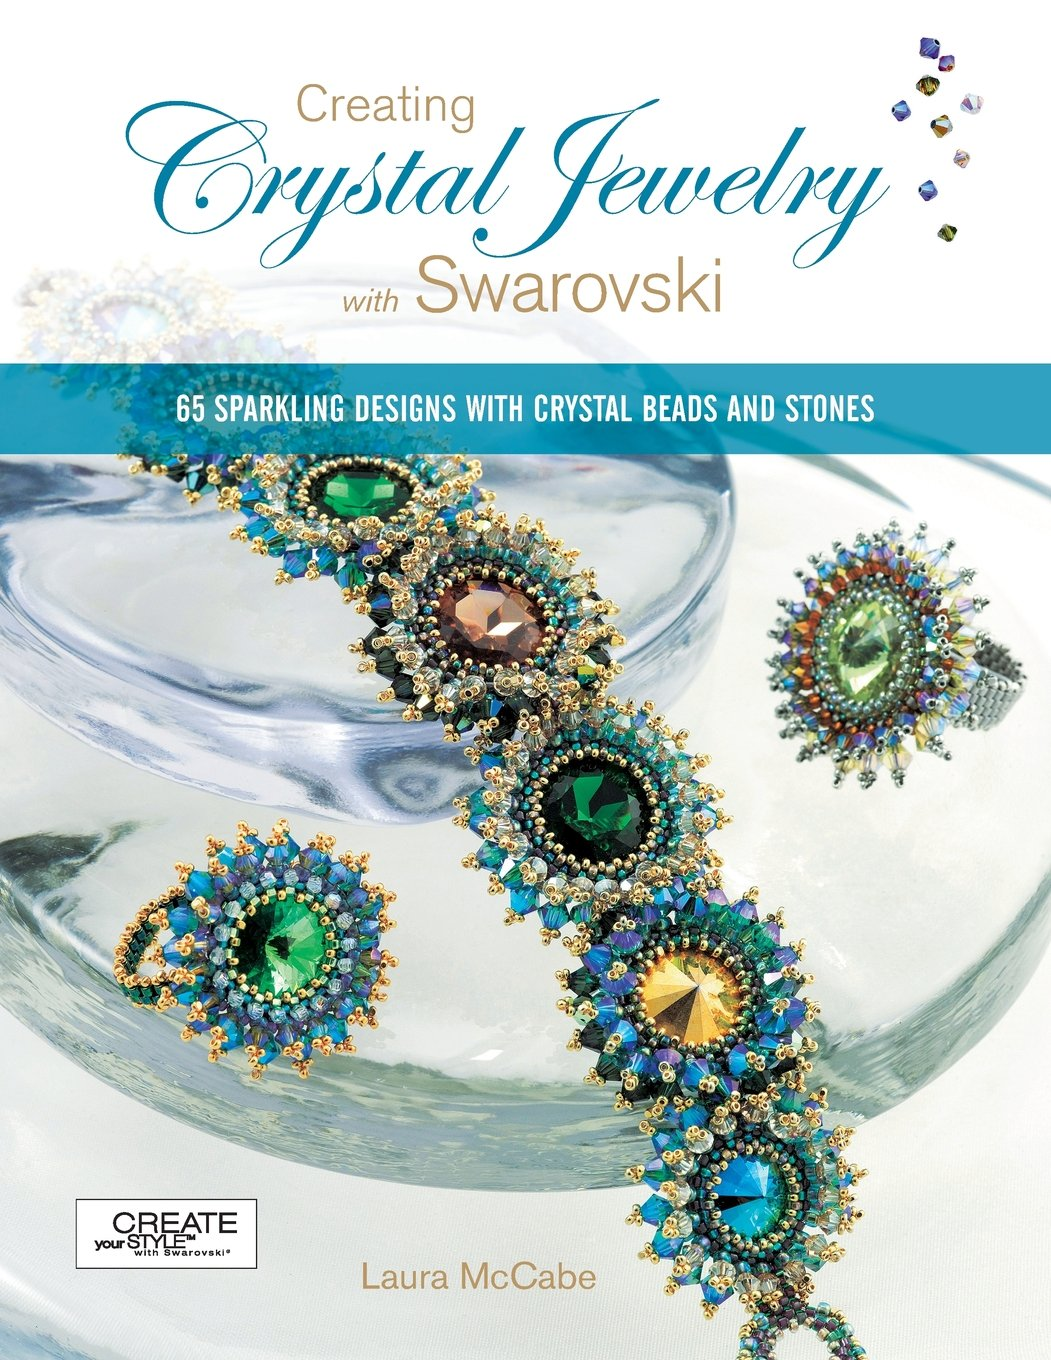 Ine design stone 187 other products - Creating Crystal Jewelry With Swarovski 65 Sparkling Designs With Crystal Beads And Stones Laura Mccabe 9781589233454 Amazon Com Books